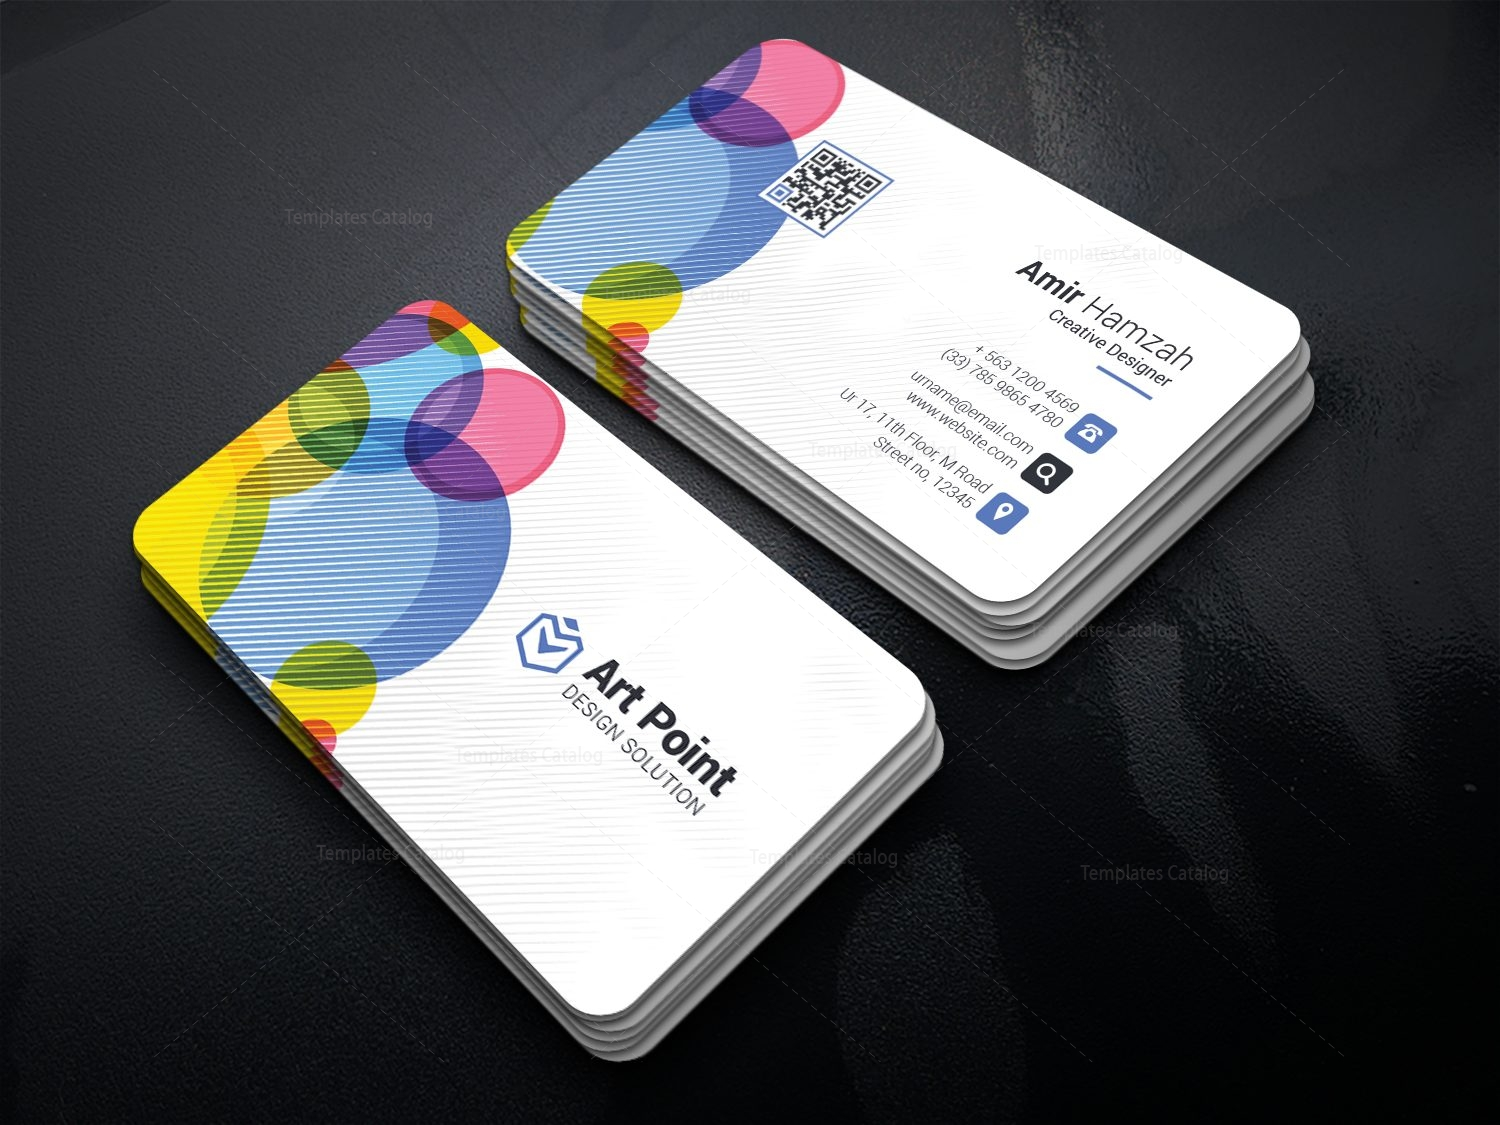 credit card business card template - Roho.4senses.co